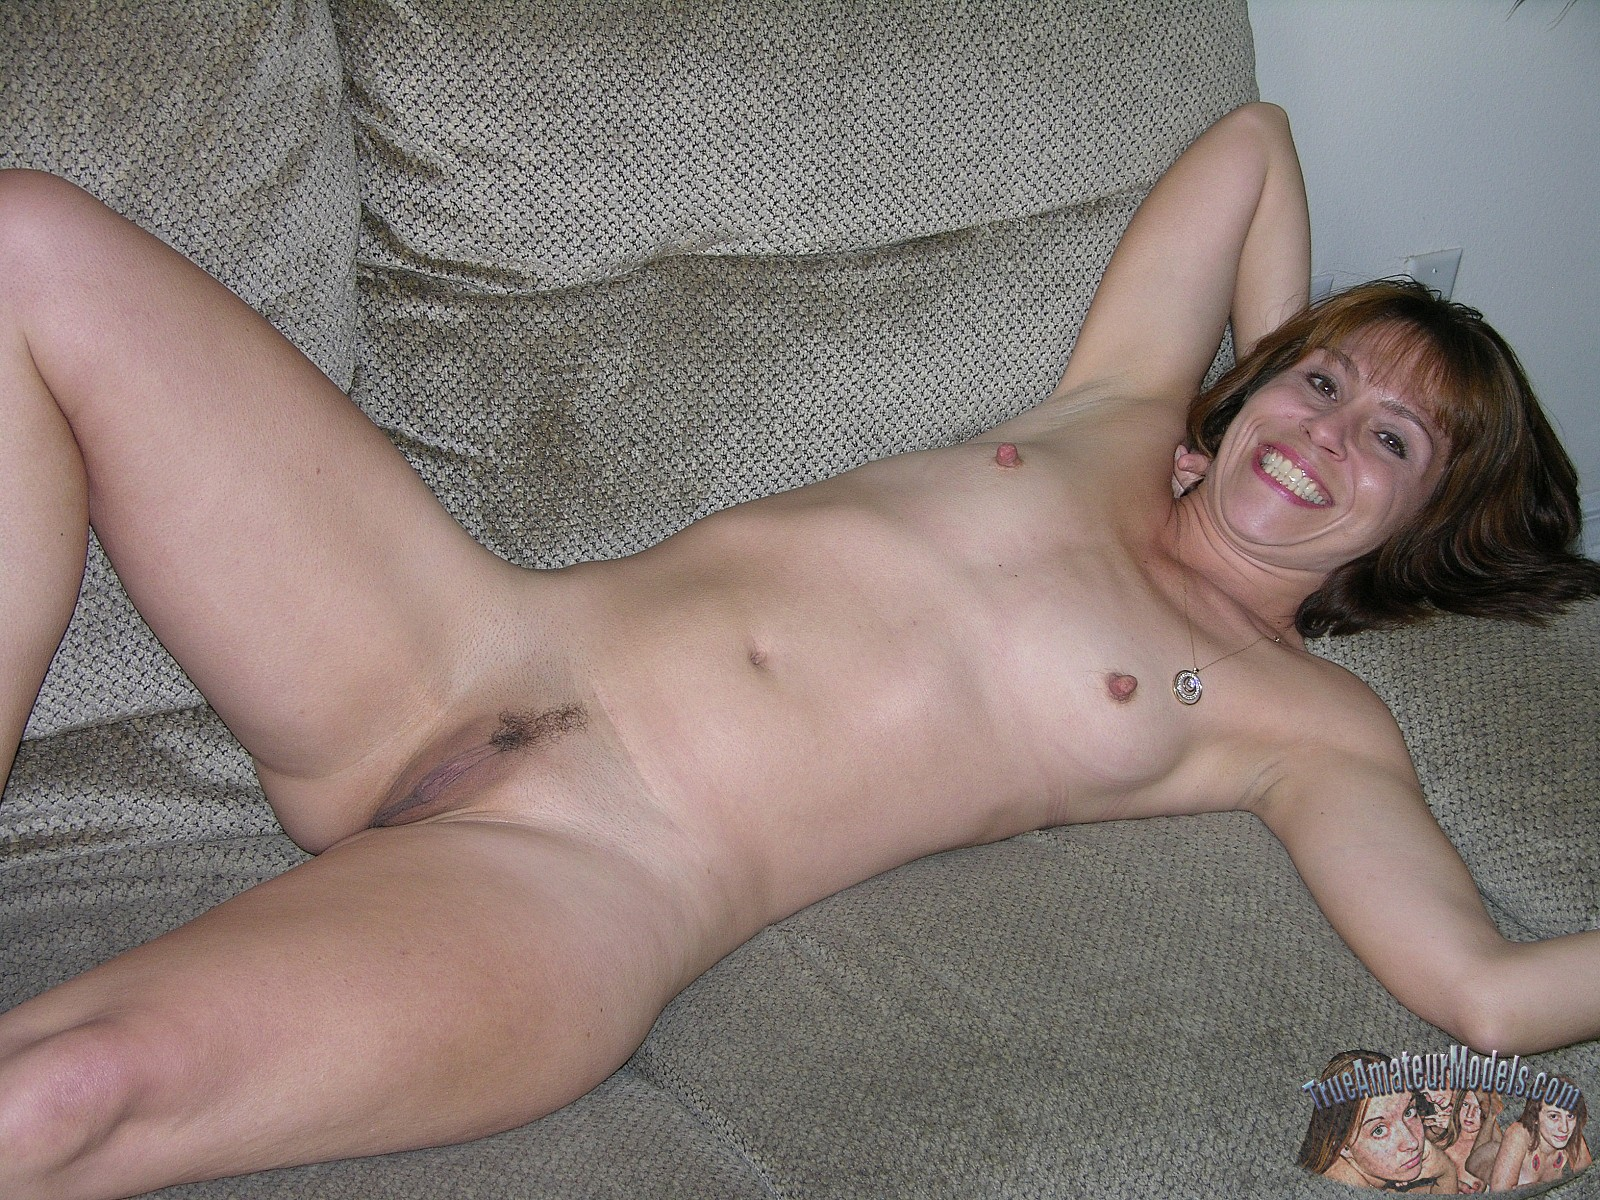 Mature milf housewife